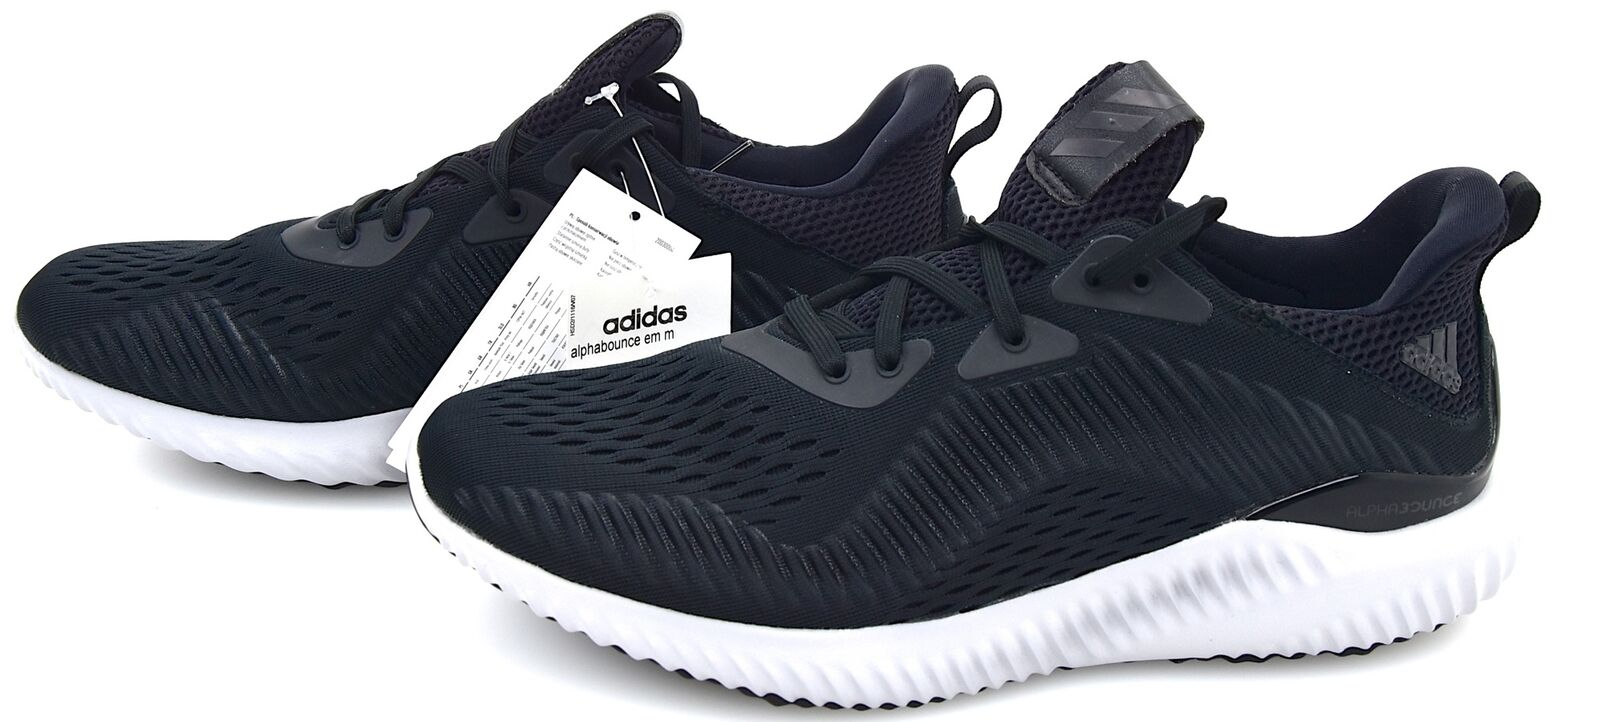 ADIDAS MAN SPORTS SNEAKER RUNNING SHOES FREE TIME CODE BY4264 ALPHABOUNCE EM M